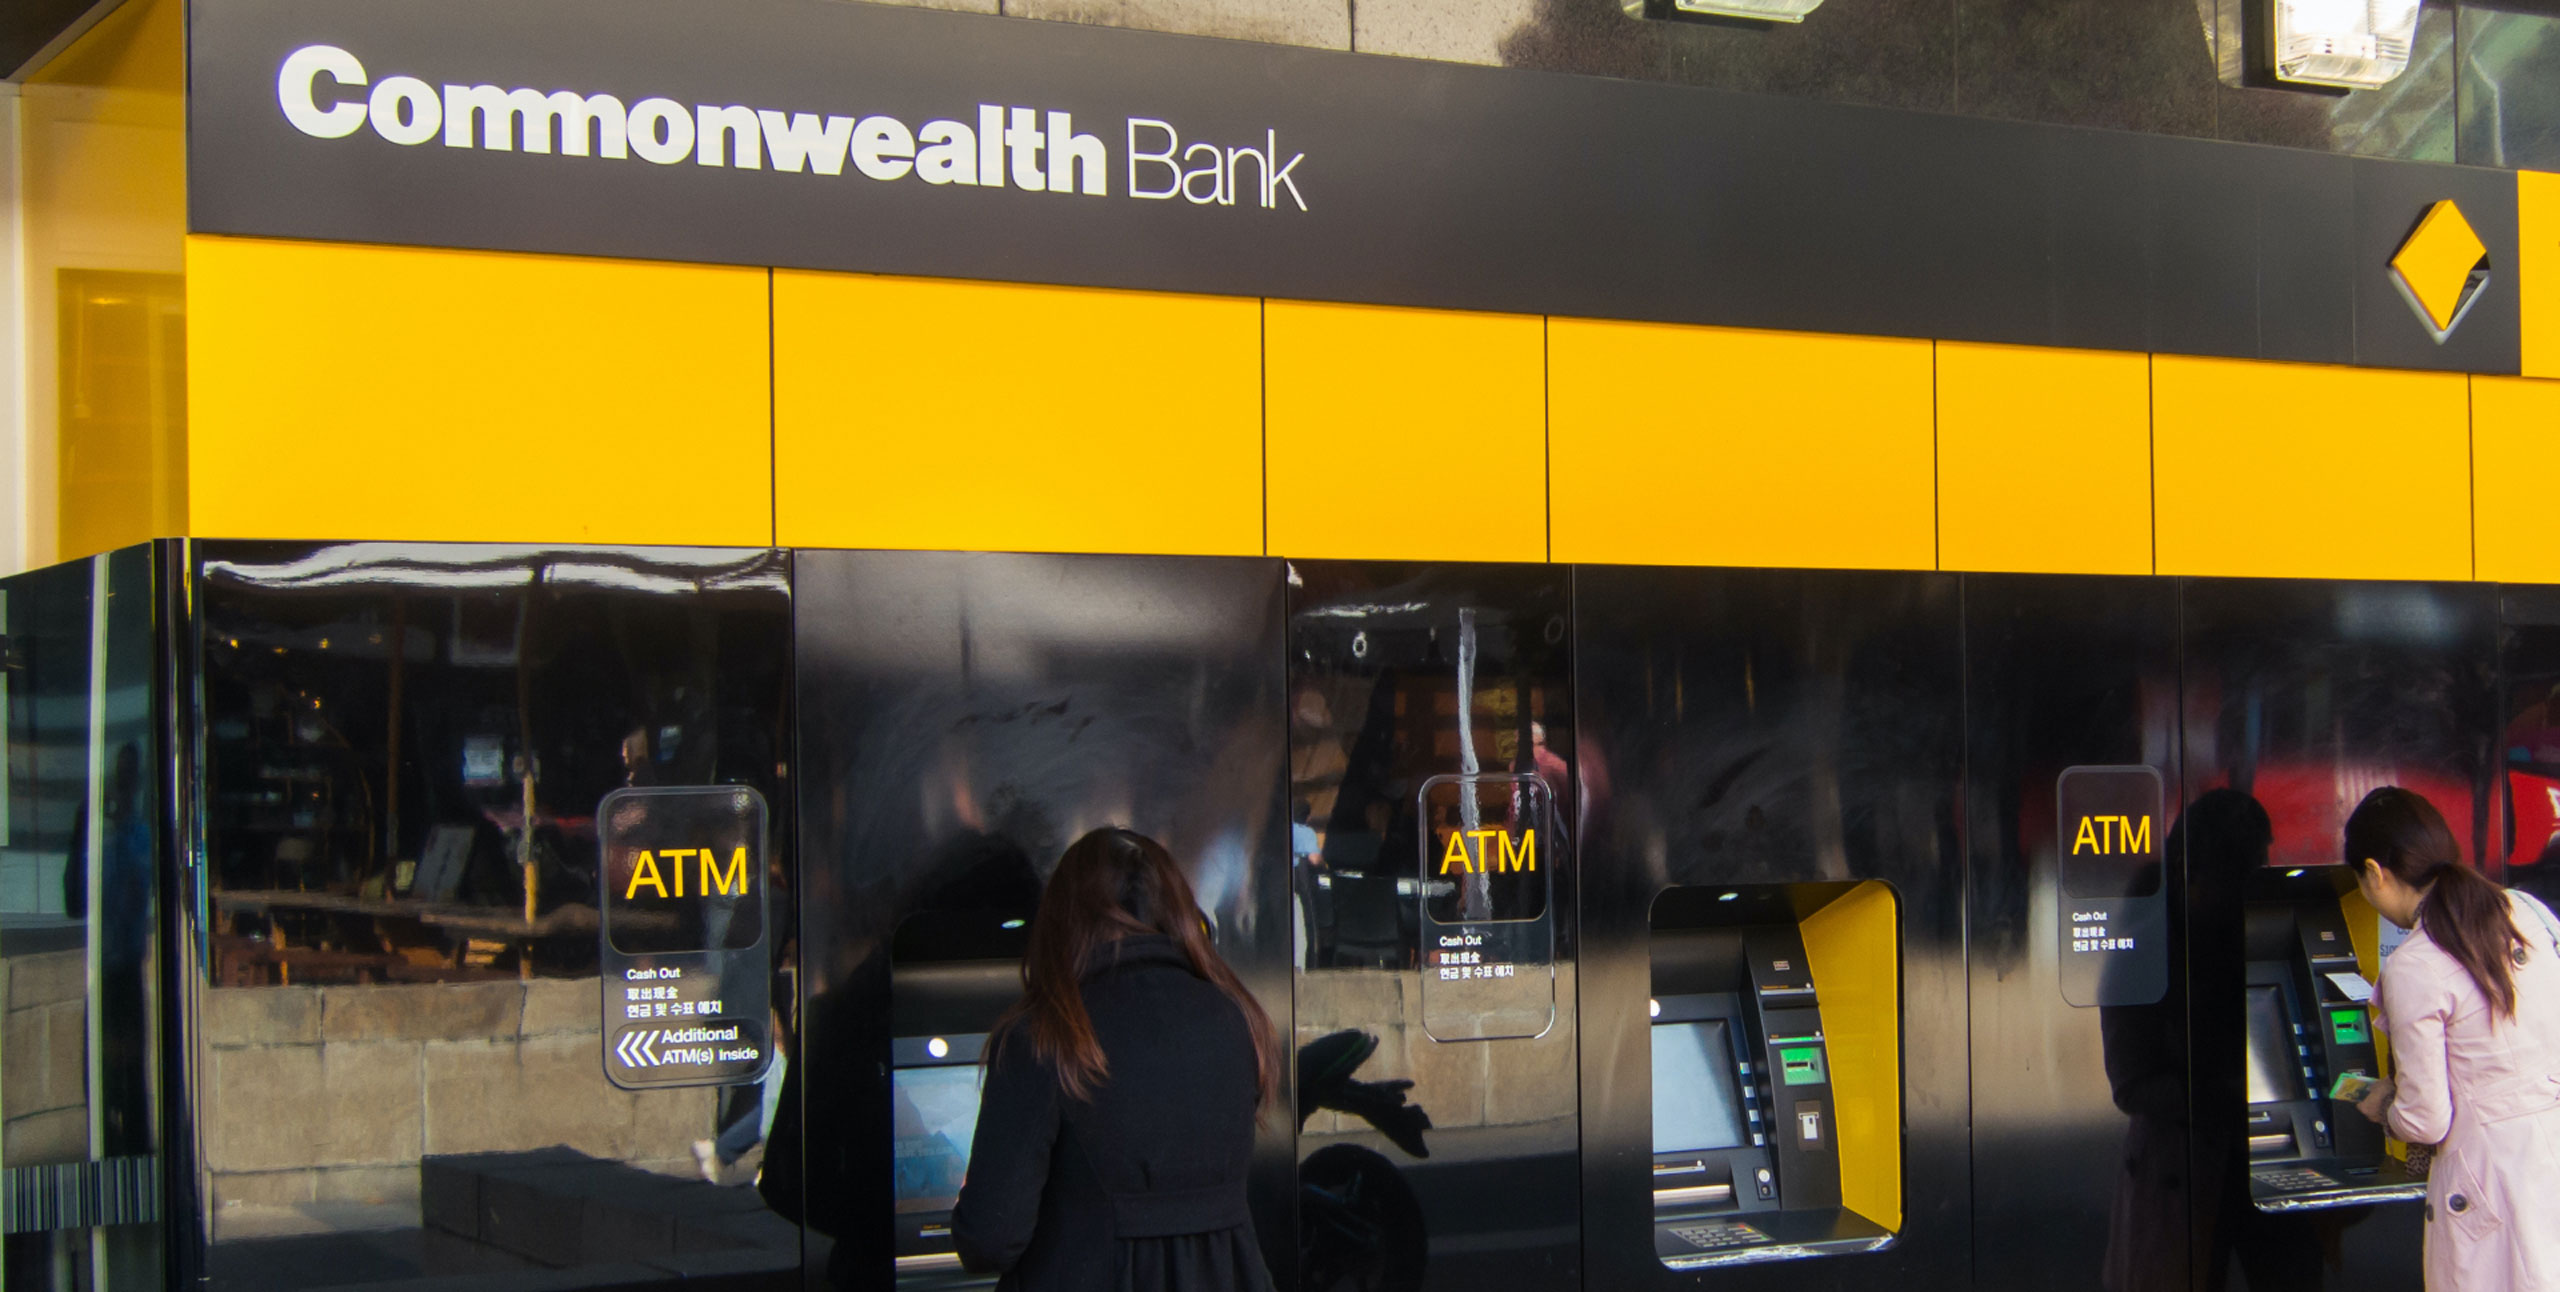 Our Creation - Commonwealth Bank